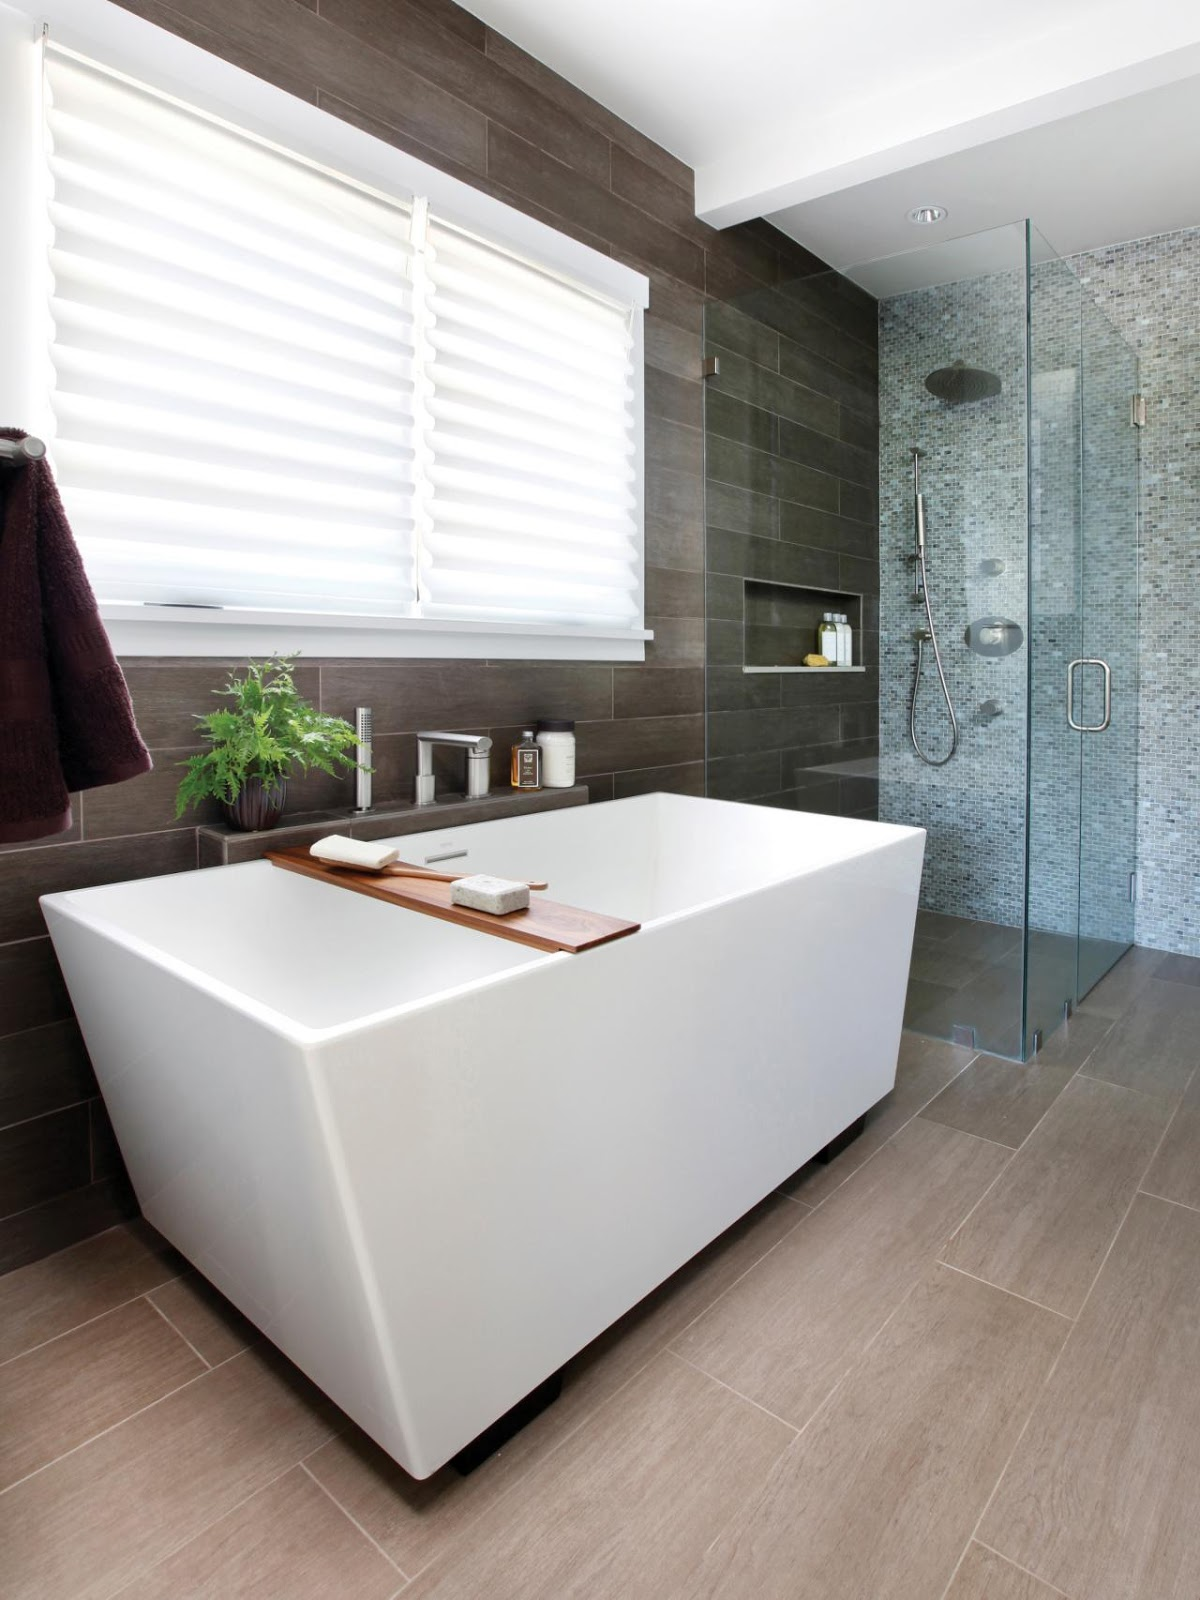 Bathtub Design Ideas 30 Modern Bathroom Design Ideas For Your Private Heaven Freshome